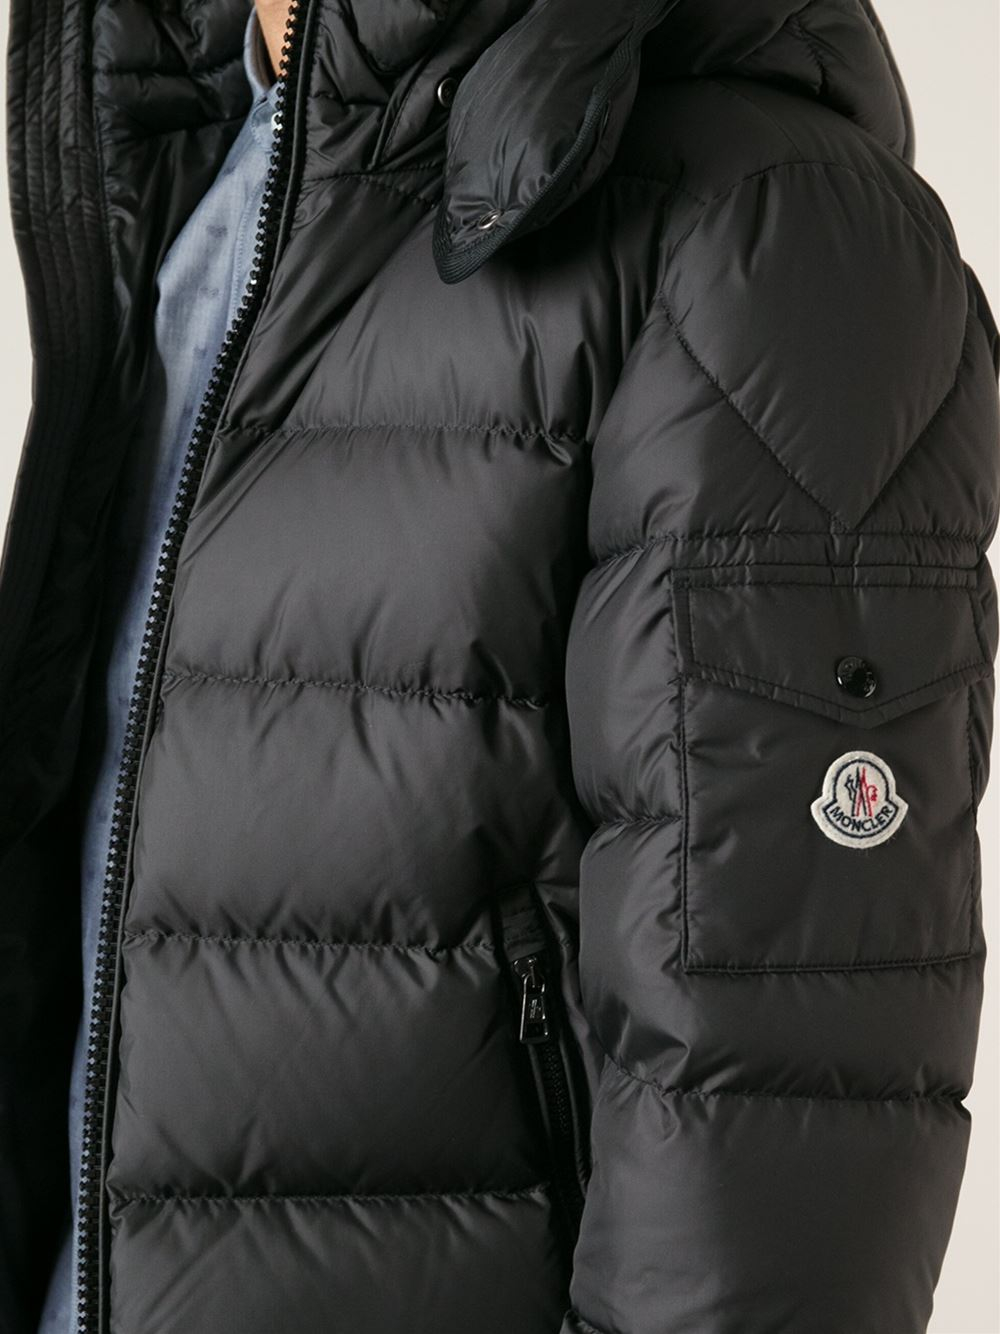 4a0e70d76 Moncler 'himalaya' Padded Jacket in Black for Men - Lyst